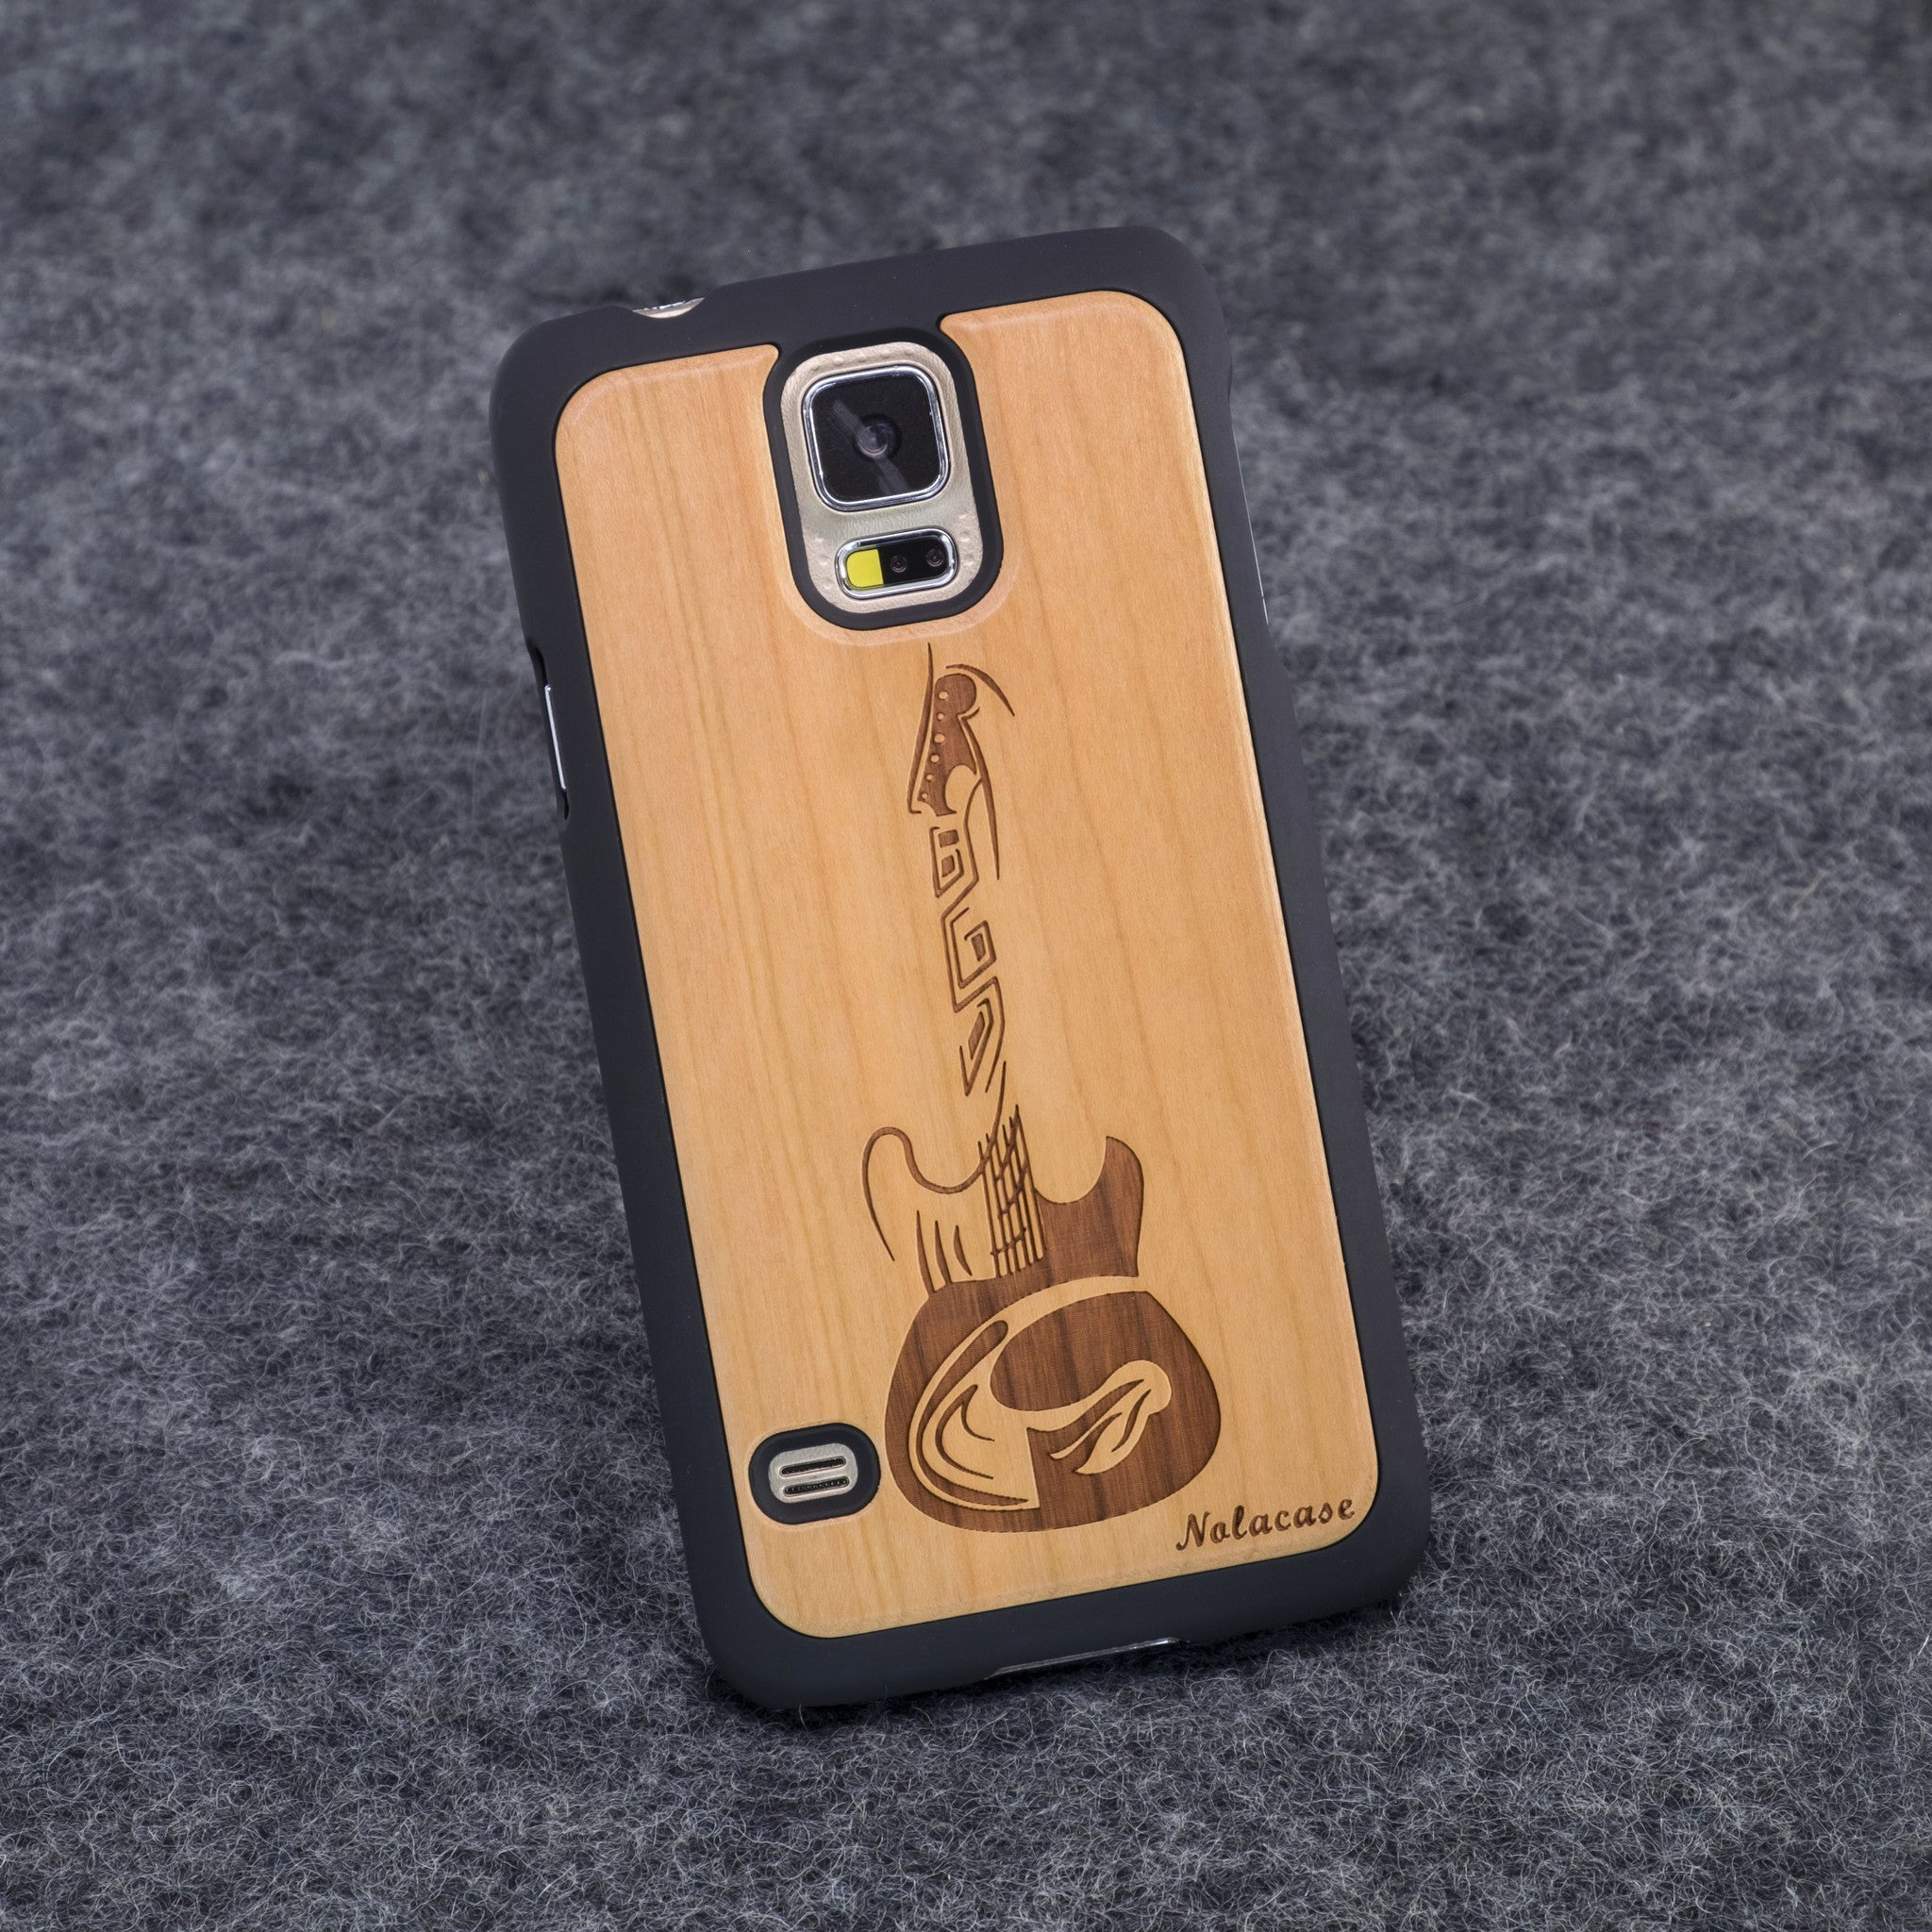 Samsung S5 Guitar Slim Wood Case - NOLACASE